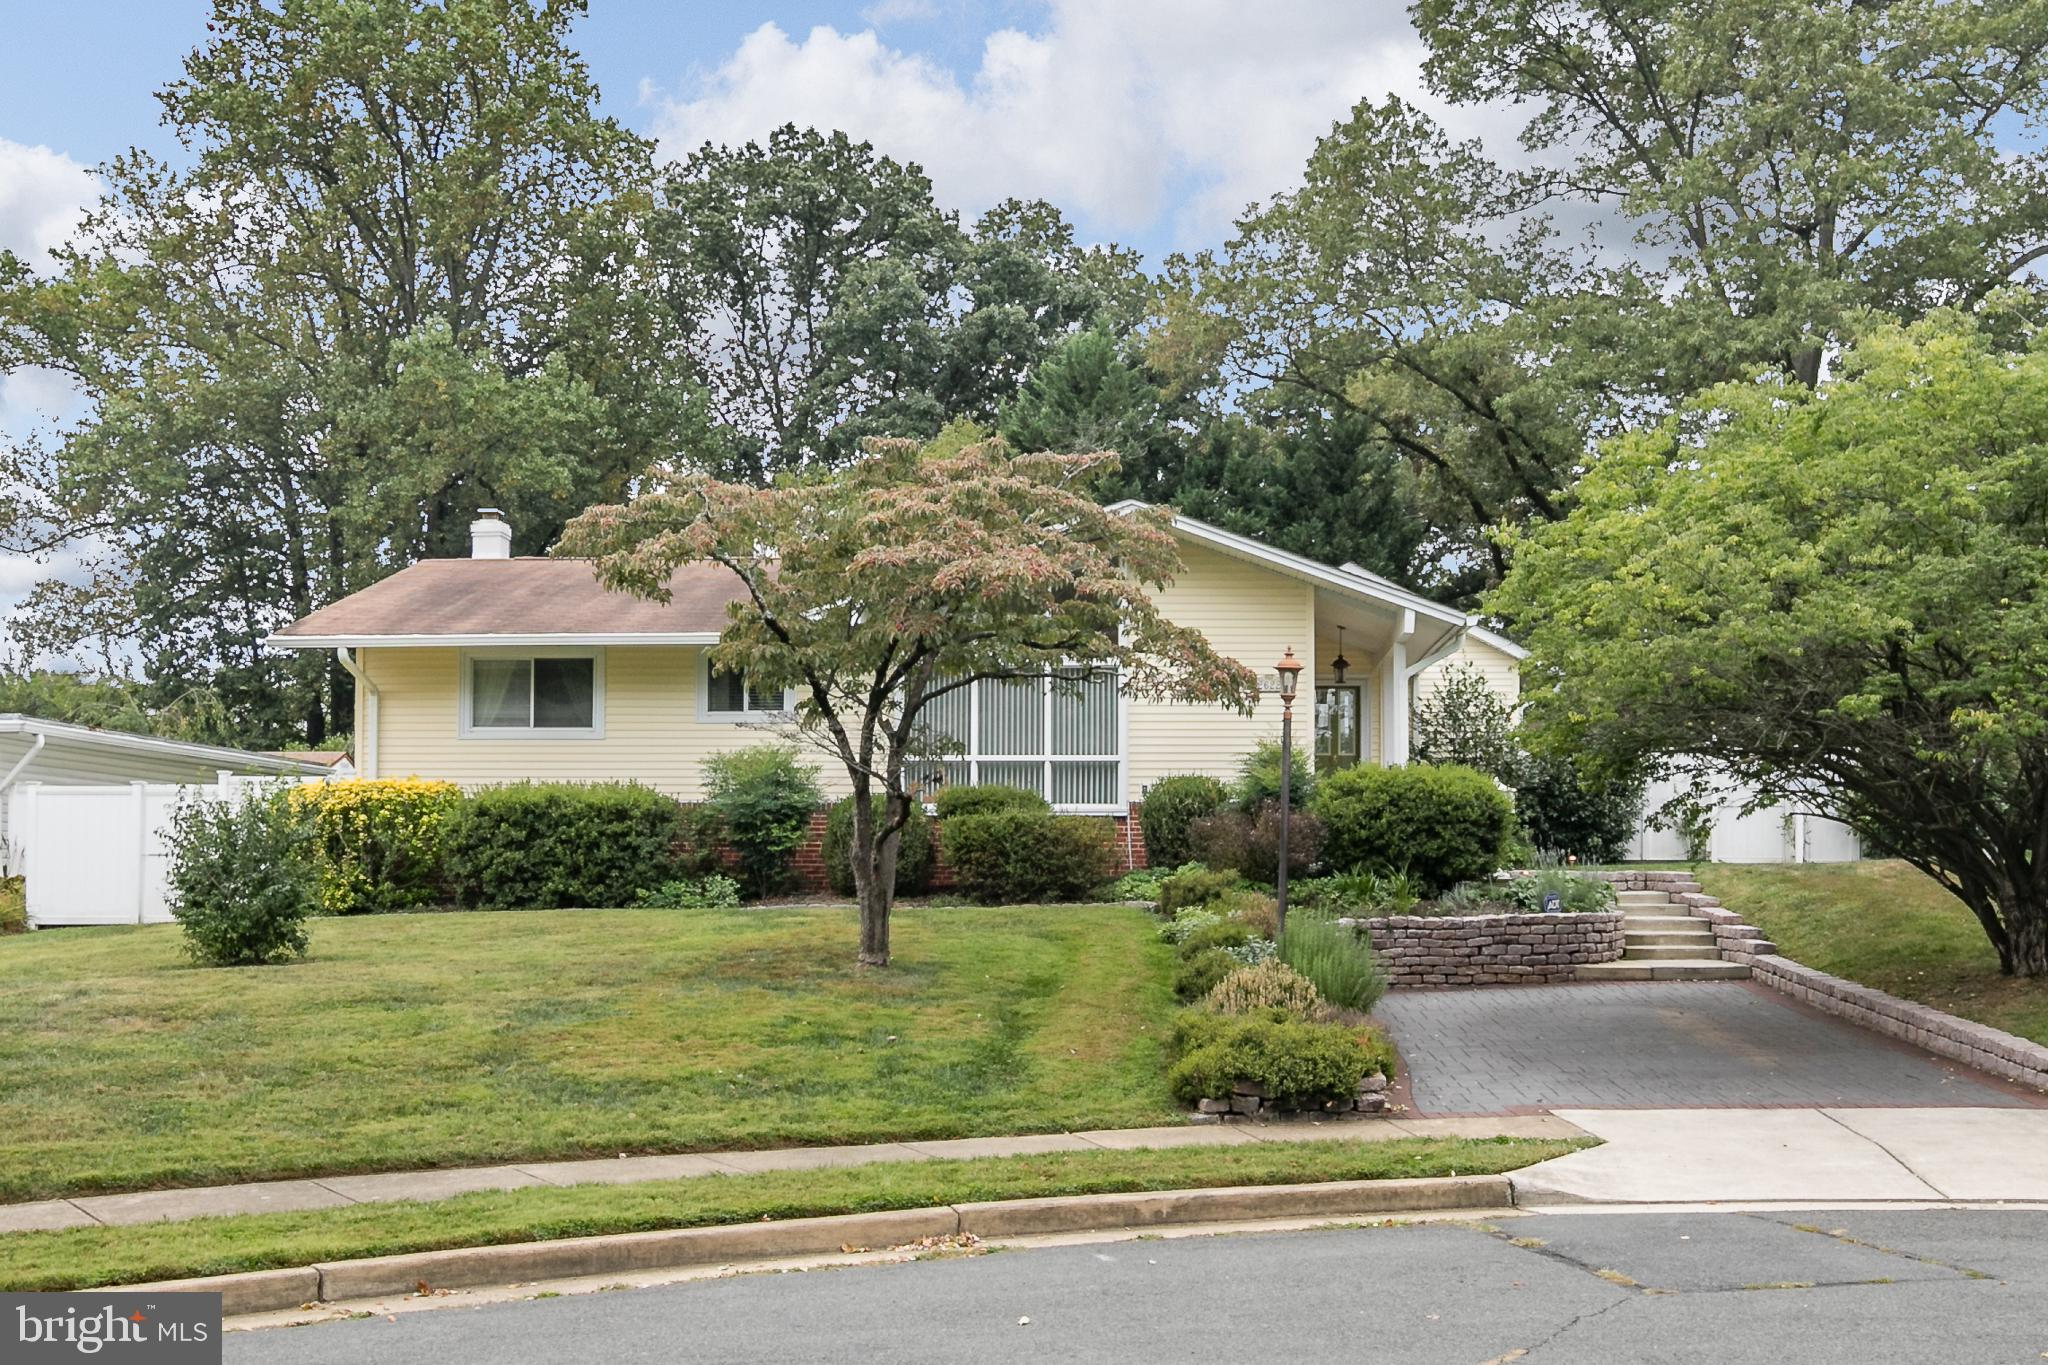 This home has had many updates and upgrades including 2 additions in  2009.  2 zone heating & cooling.  Hardwood flooring throughout the main level.  Spacious master bedroom addition with master bath and walk-in closet.  2nd bedroom has it's own bathroom.  Updated kitchen with high-end cabinets and appliances including a large 5 burner gas cooktop with ss hood, double full sized wall ovens (one is convection).  Family room with gas fireplace (current owners used this as their dining room.  Front living room could be used as a dining room depending on your life style.  Sunroom off the family room.  Large deck is accessible from sunroom & kitchen.  There is a pergola with climbing wisteria.  Extensive landscaping.